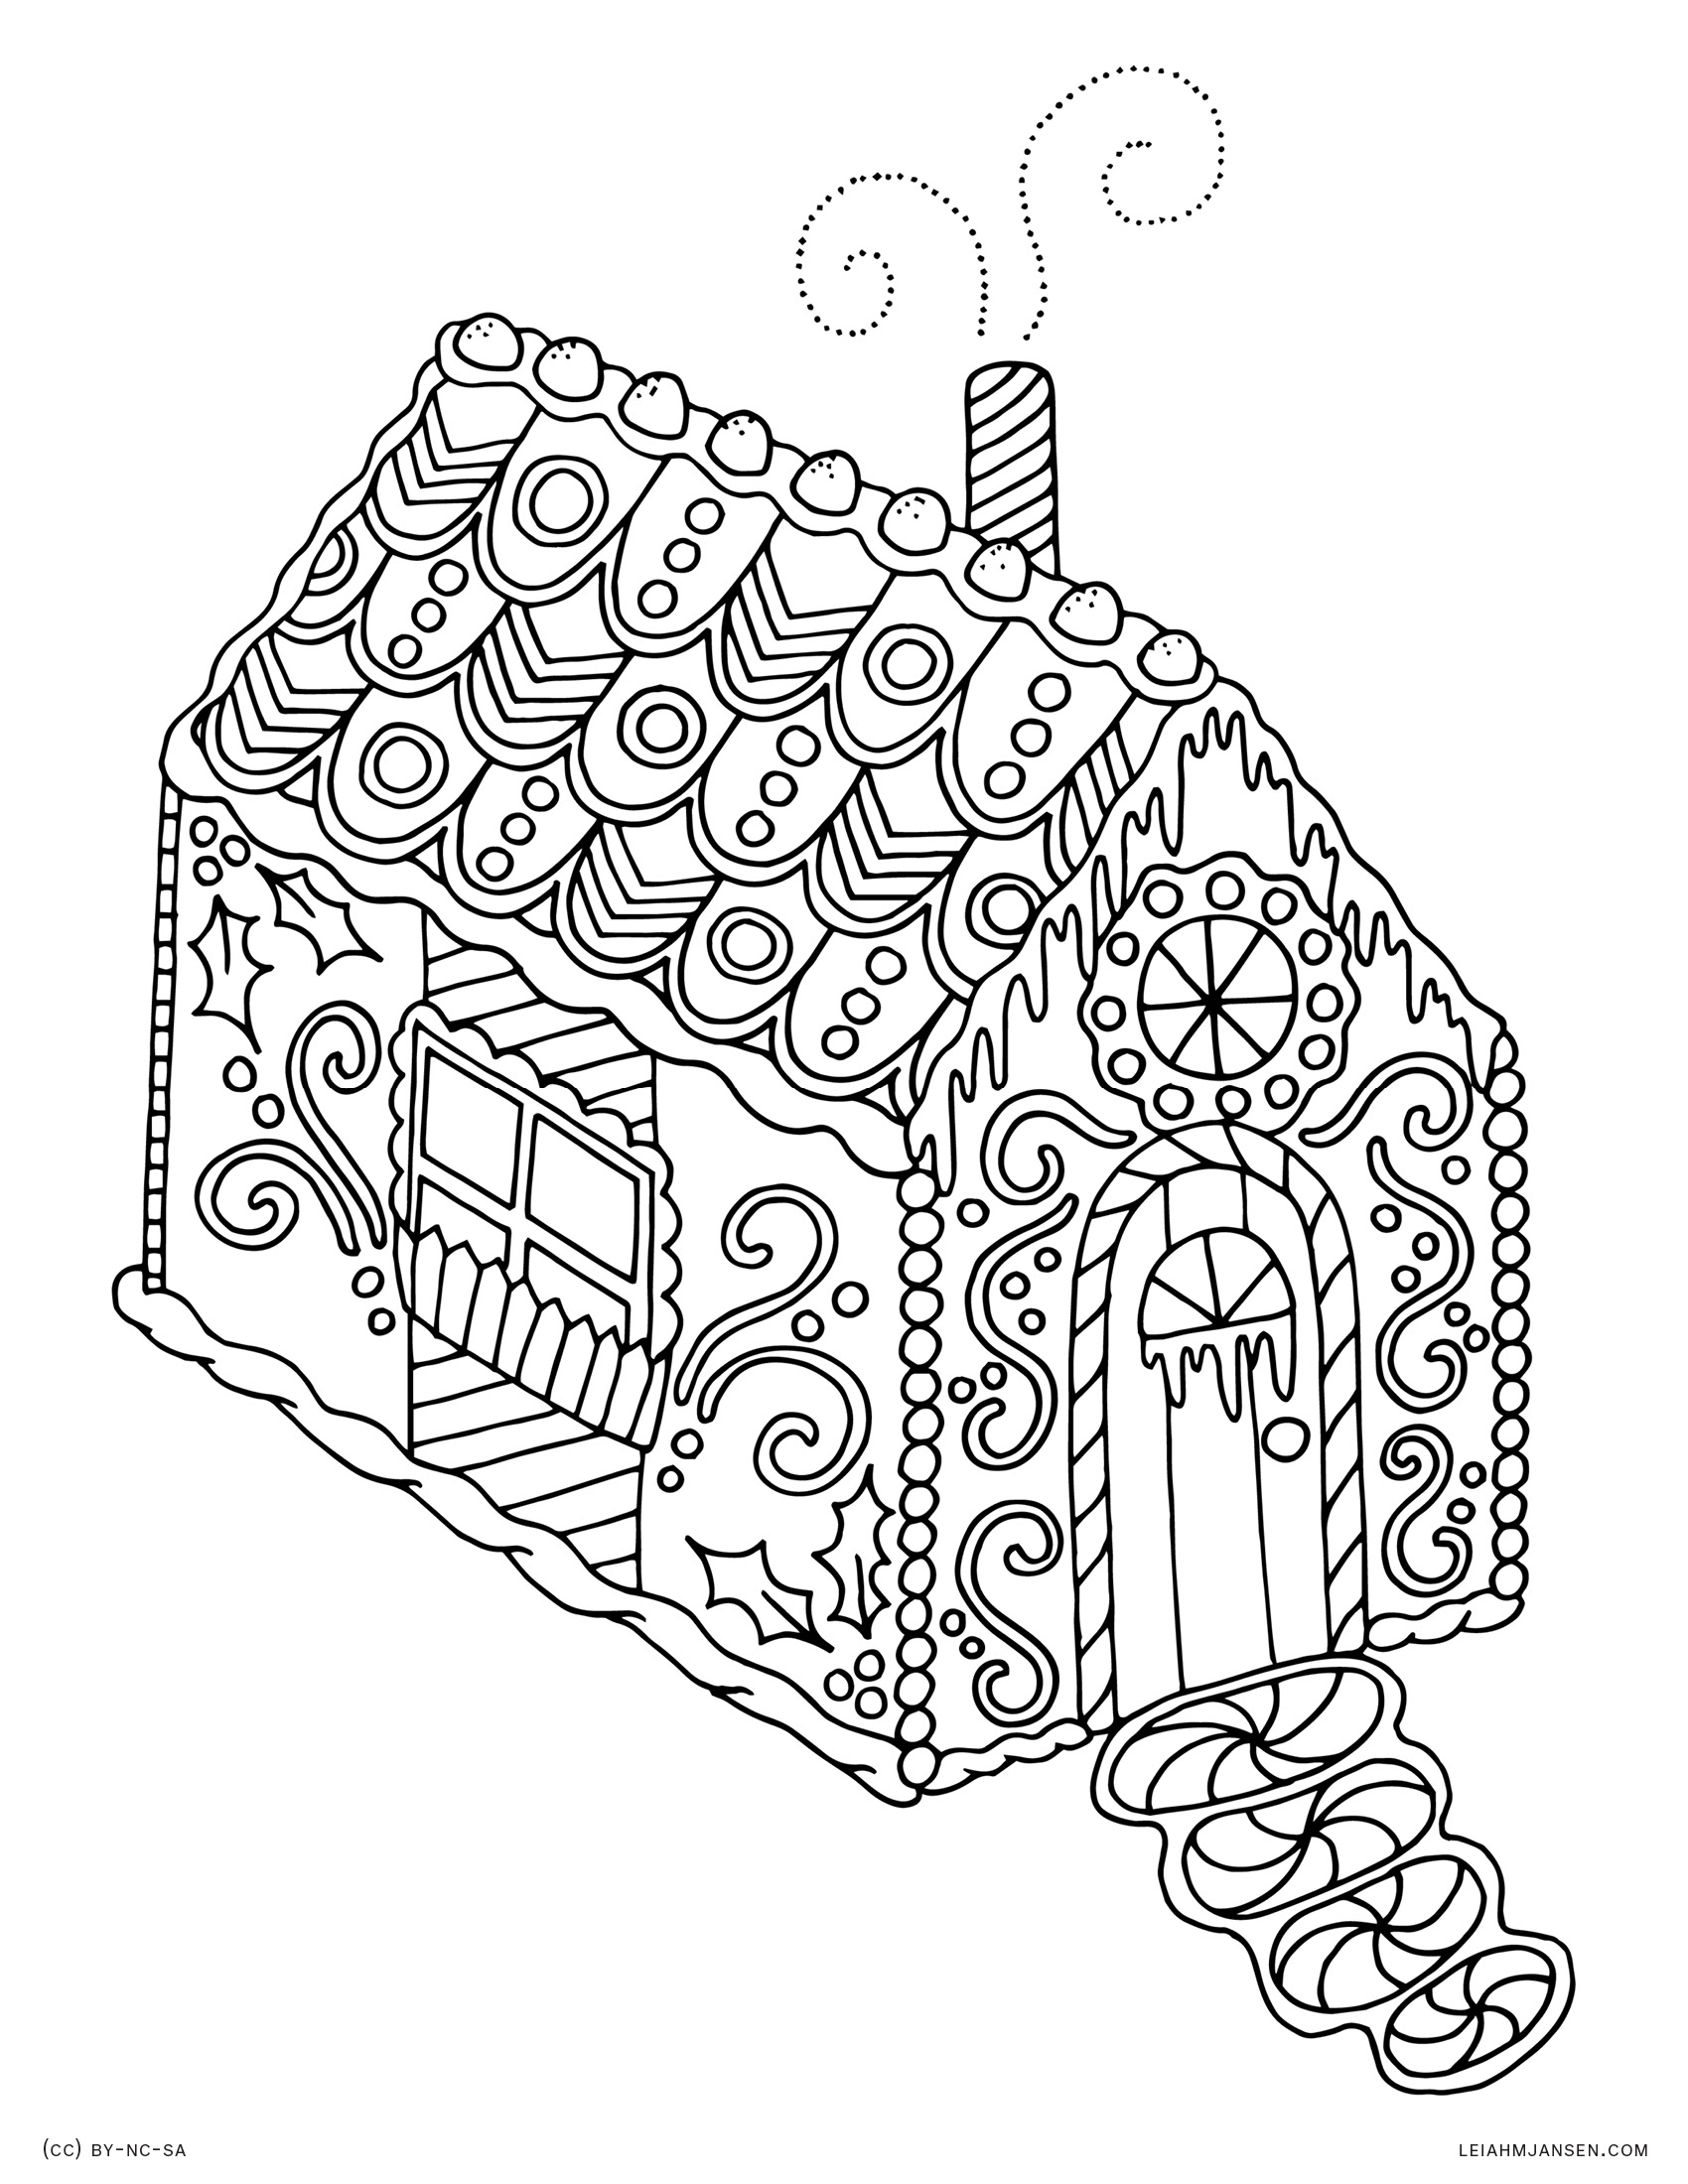 printable middle school coloring pages coloring pages for middle school students coloring home school coloring printable pages middle